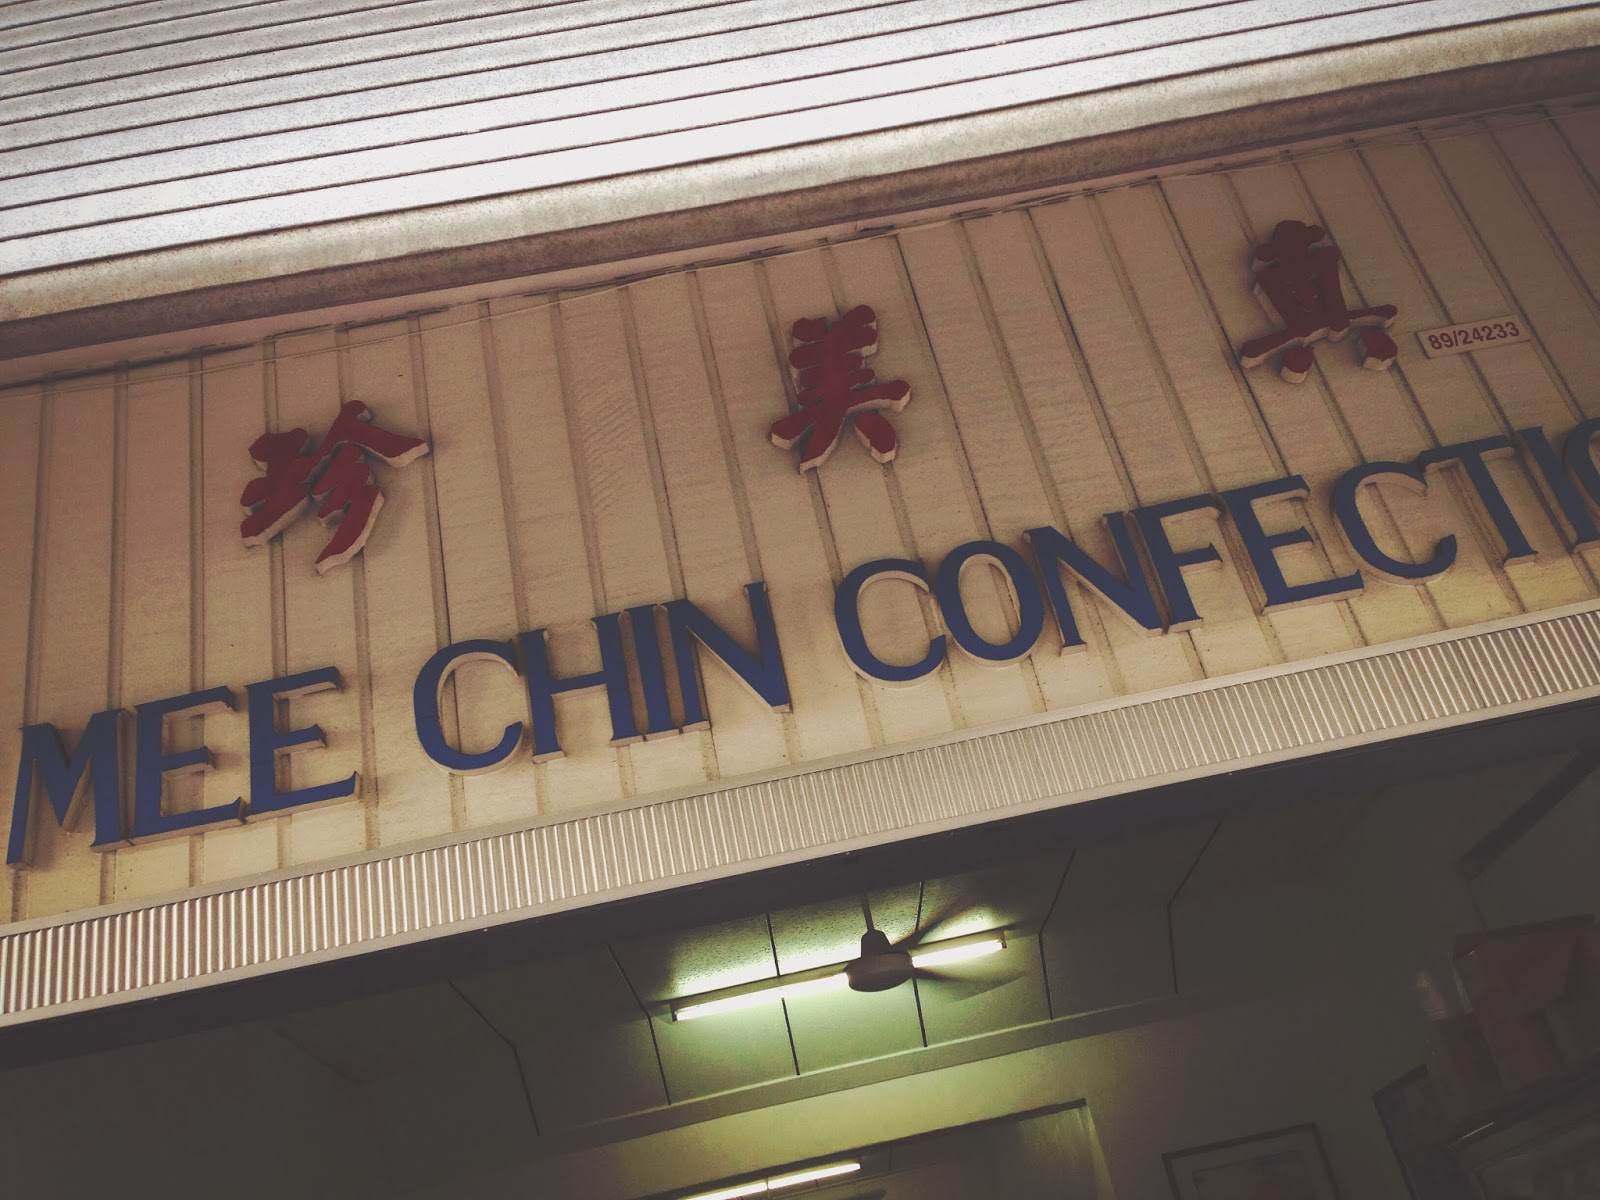 Chin Mee Chin Confectionery East Coast Road